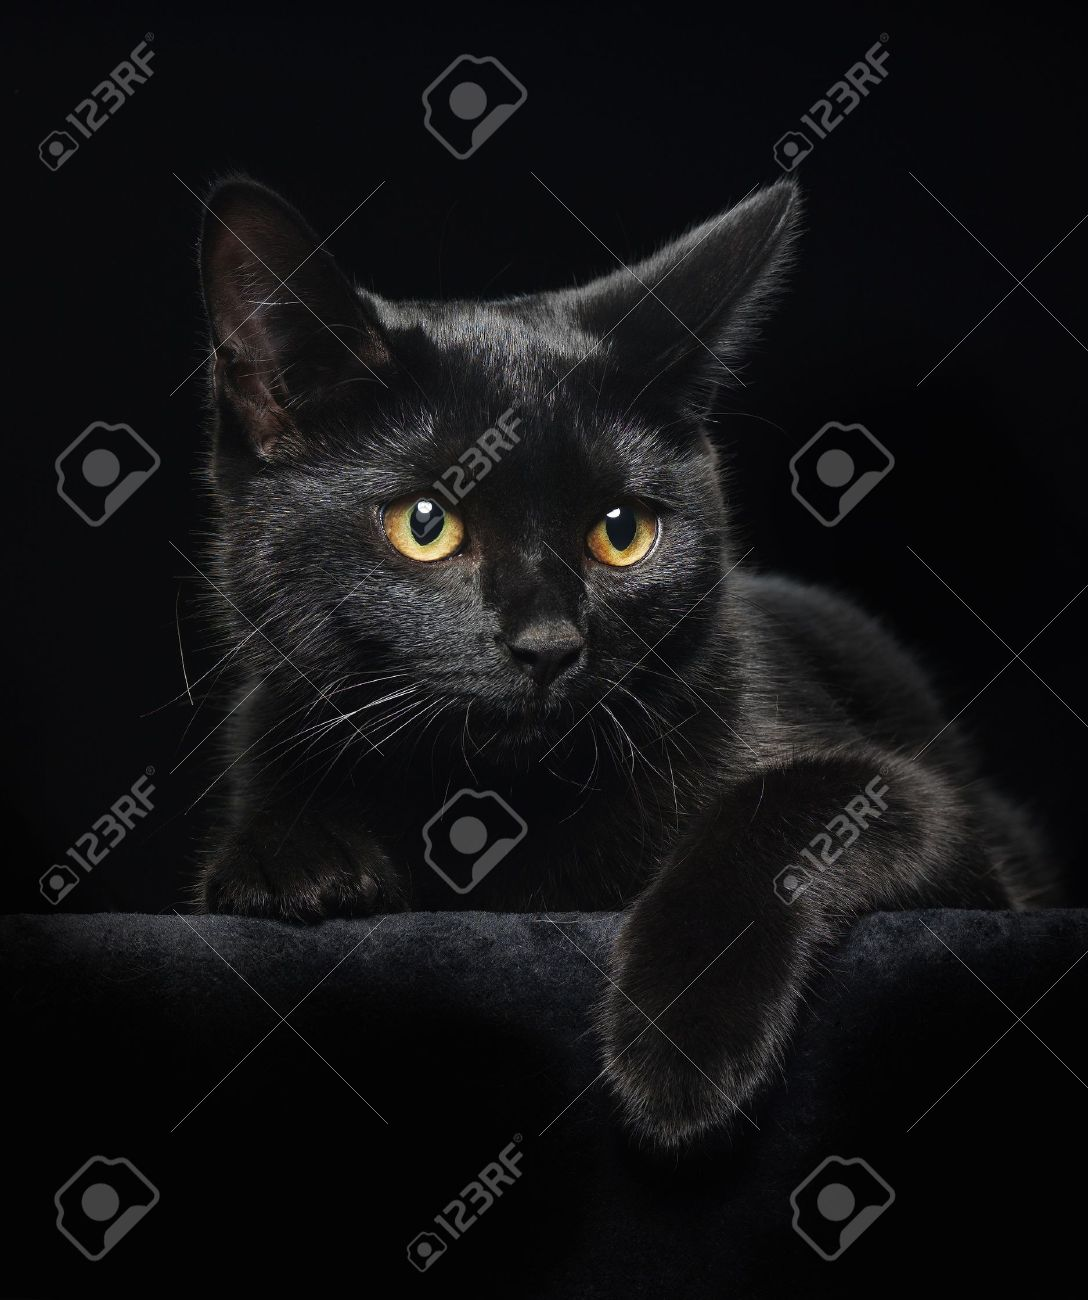 Black Cat With Yellow Eyes On Black Background Stock Photo Picture And Royalty Free Image Image 14282533